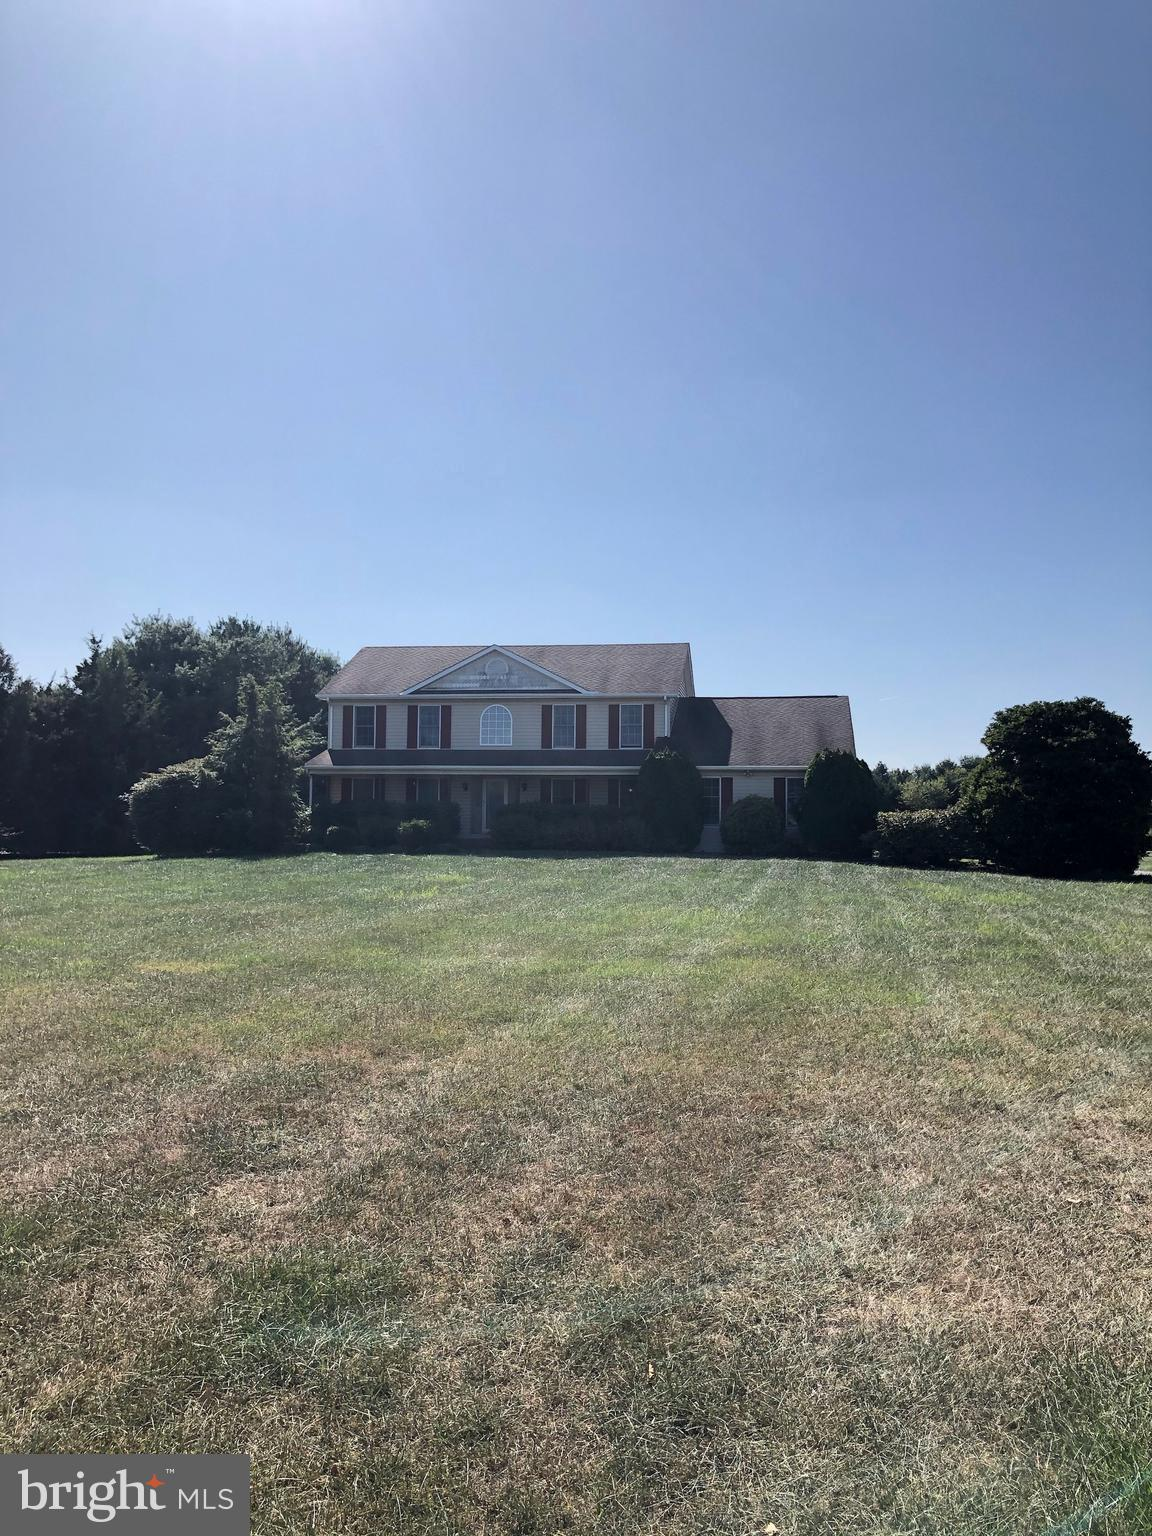 Well loved home is ready for a new owner to come and make it their own.  Needs a few improvements, but overall a GREAT value on 2 acres in Middletown.  Seller is selling as-is, no repairs will be made.